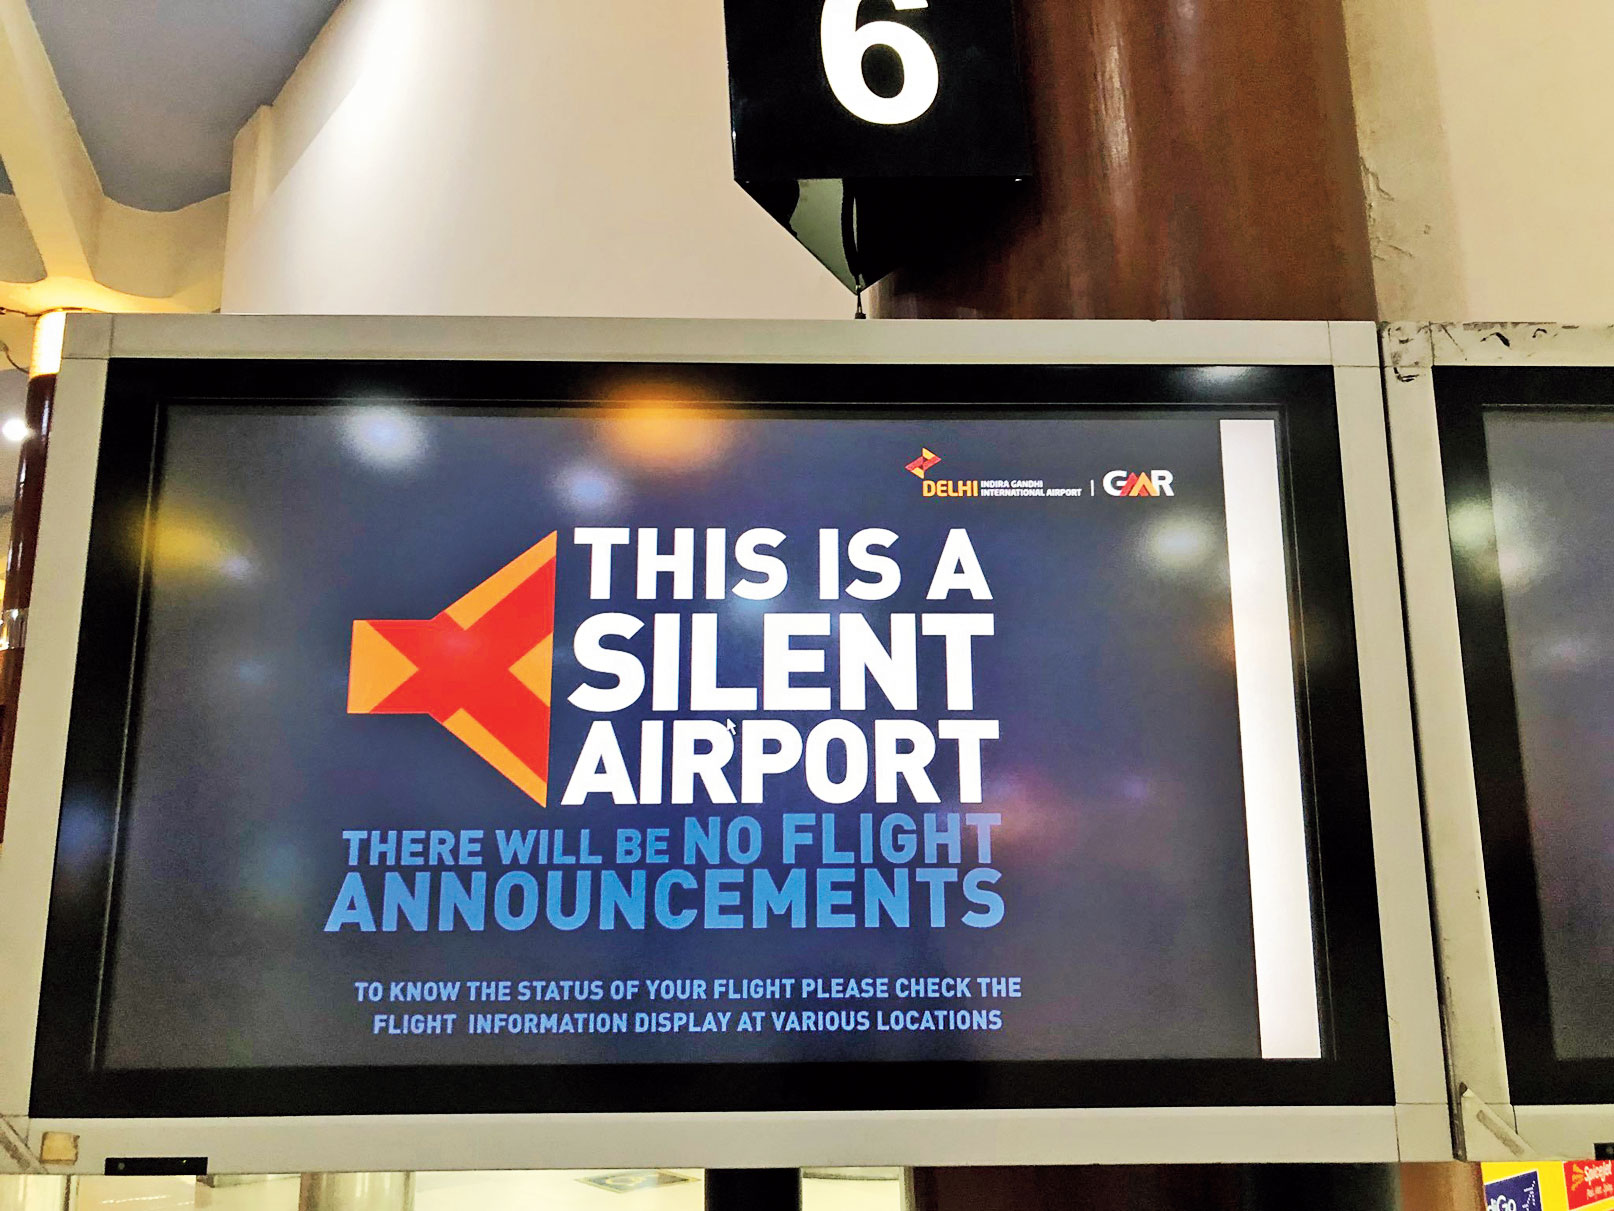 A display board announcing that New Delhi airport is a silent airport